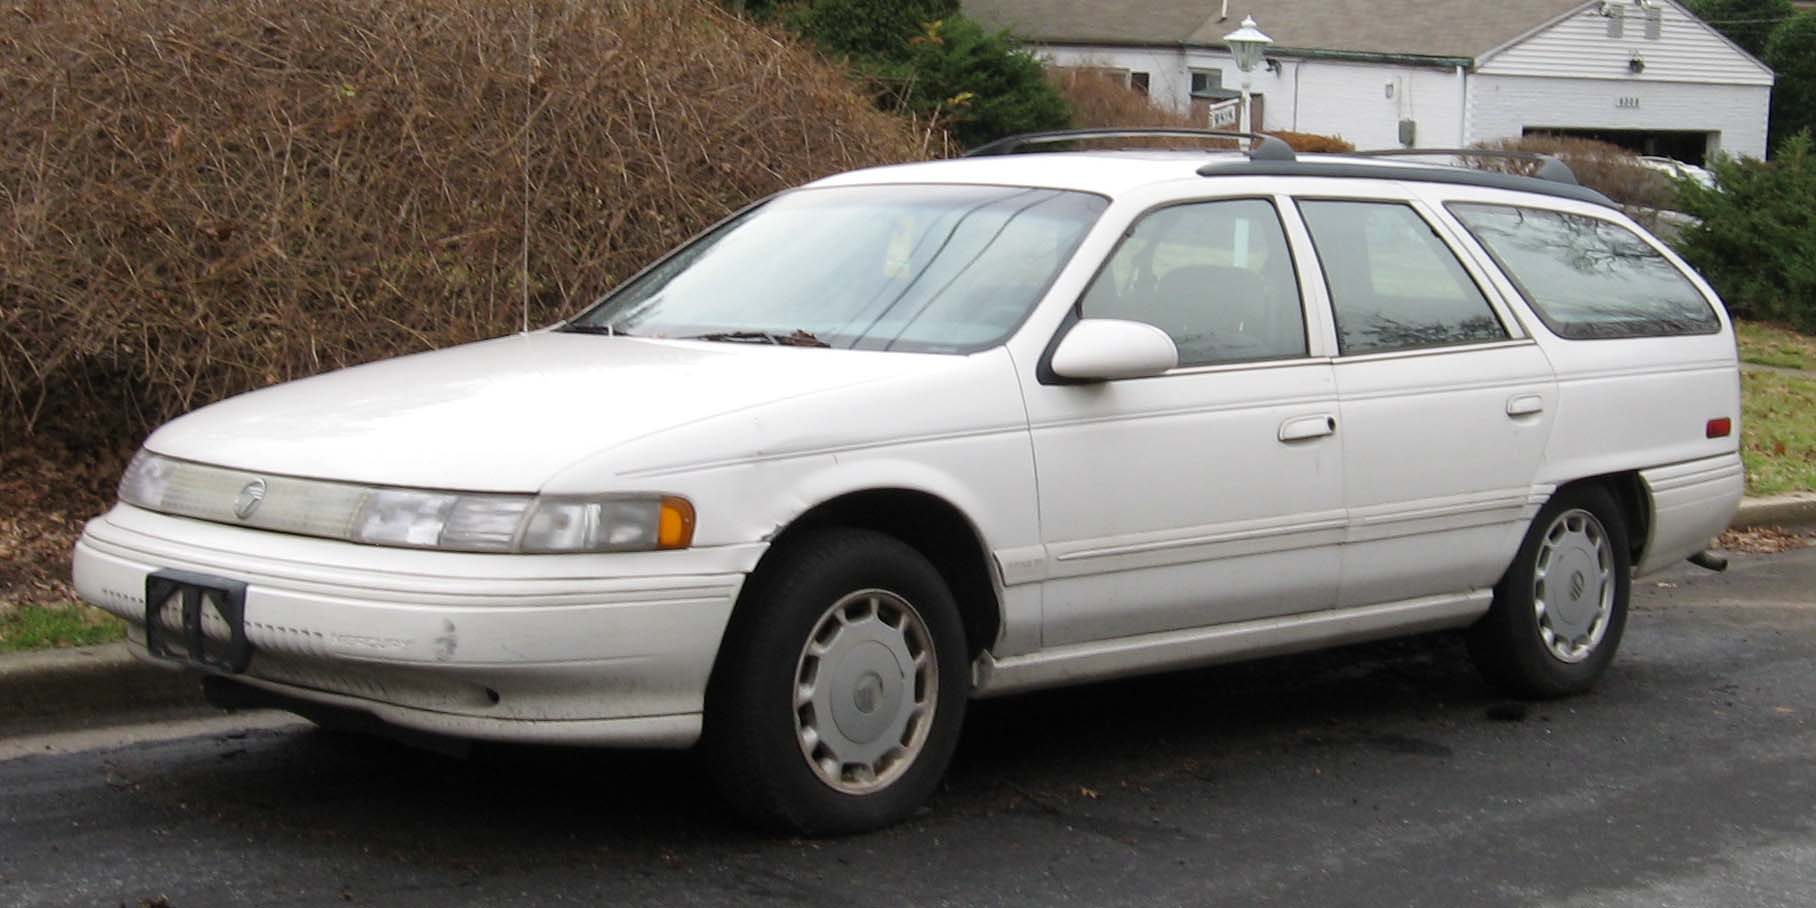 File Mercury Sable Wagon in addition 2000 Mercury Cougar Pictures C2774 in addition 302152155032 as well 261662104757 besides 1954 Mercury Sun Valley. on 1997 mercury sable